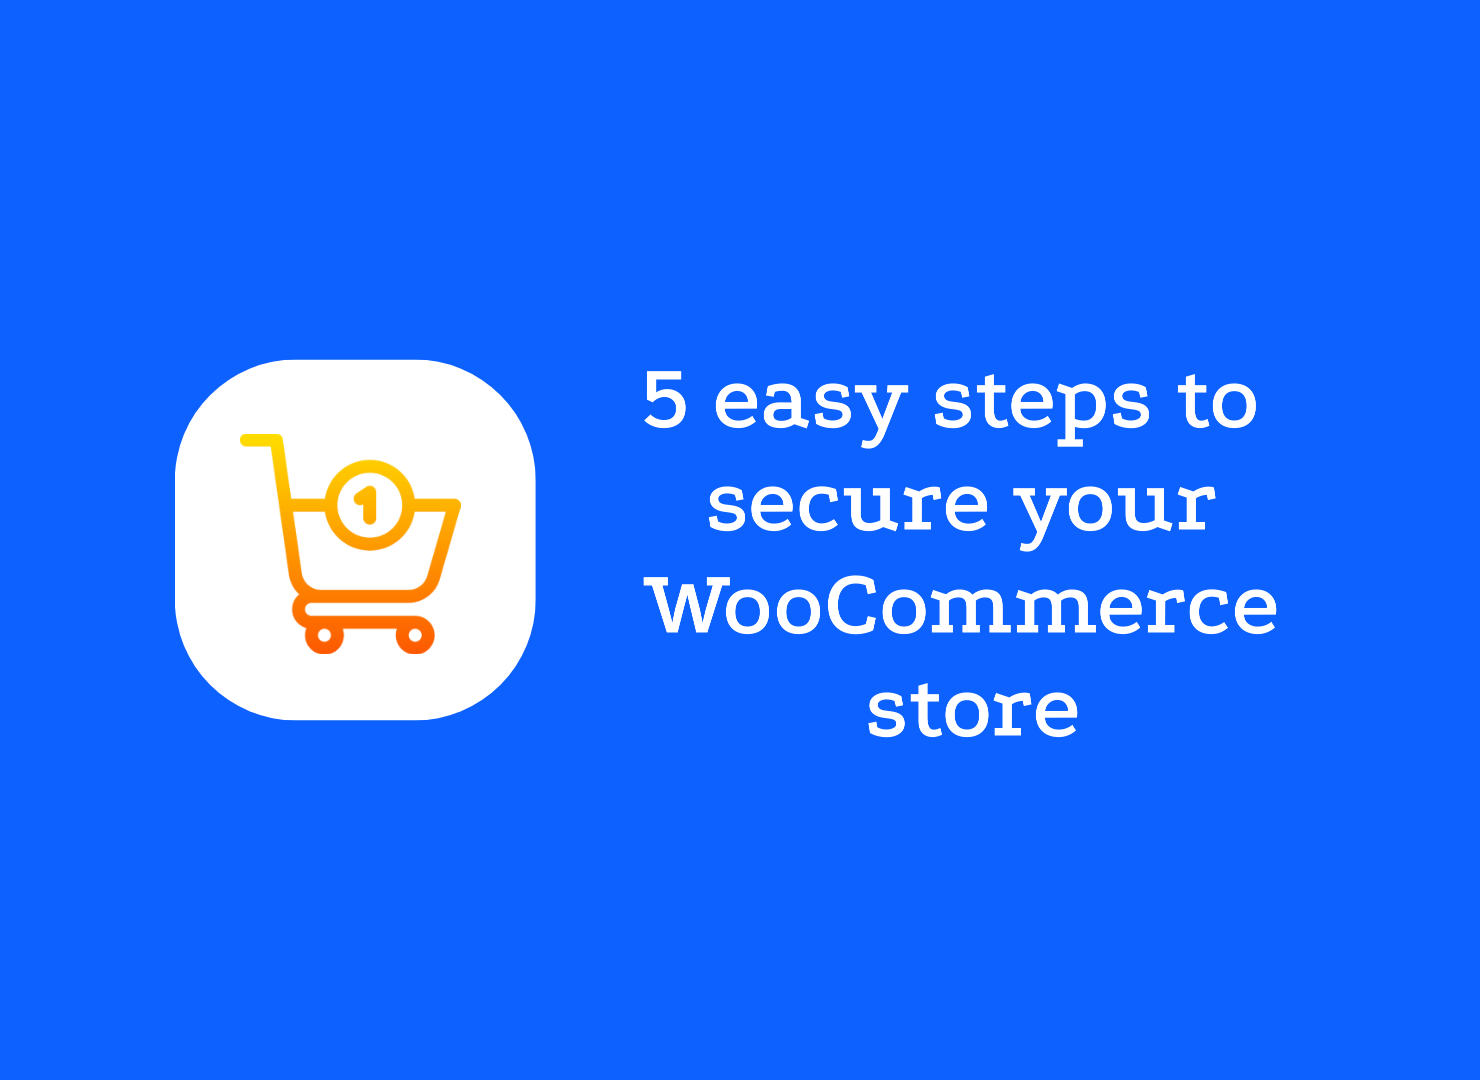 WooCommerce Security: 5 Steps to take to secure your store